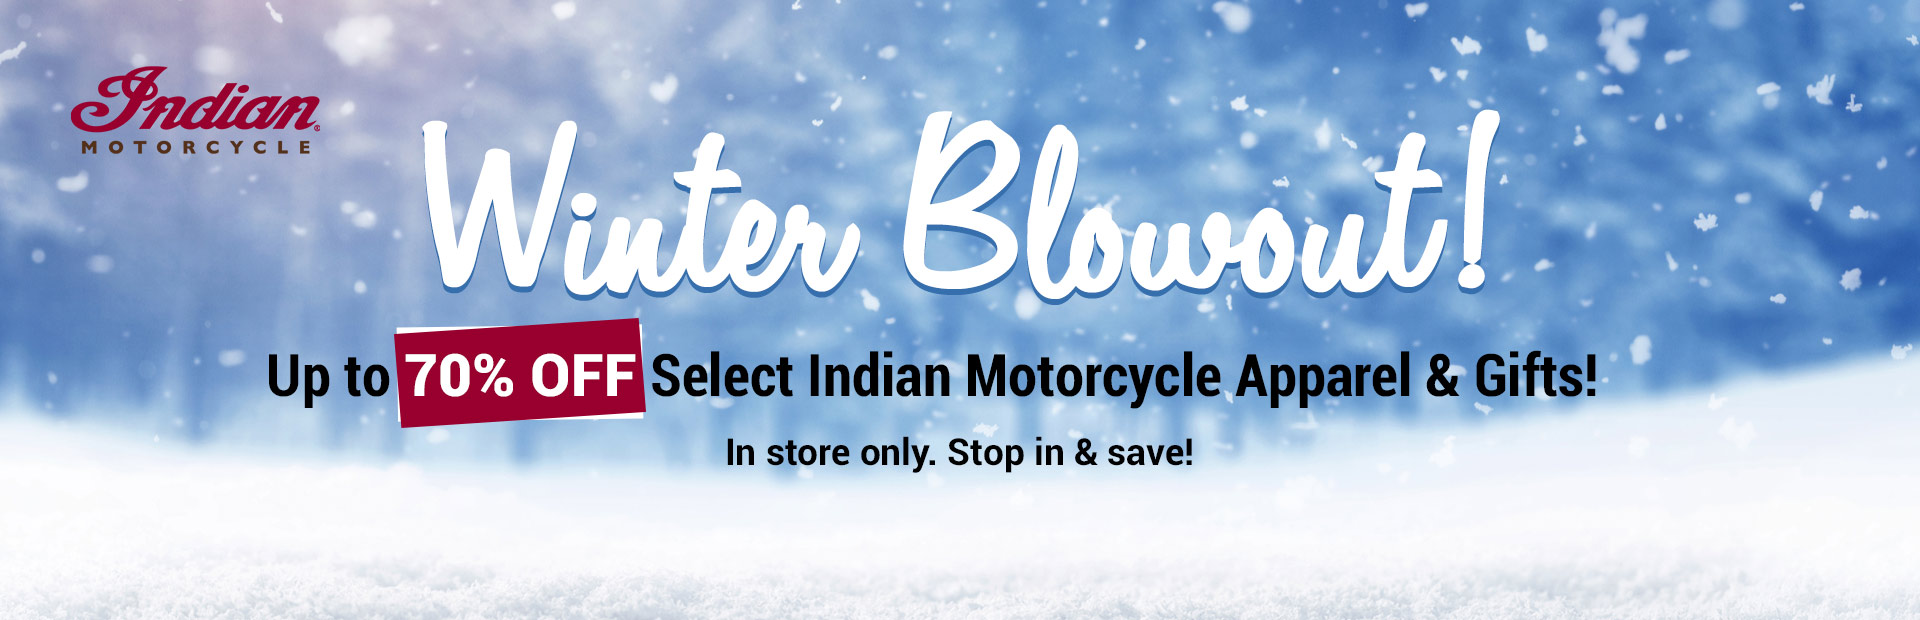 Up to 70% Off Select Indian Motorcycle Apparel & Gifts: Stop in and save now until December 31!